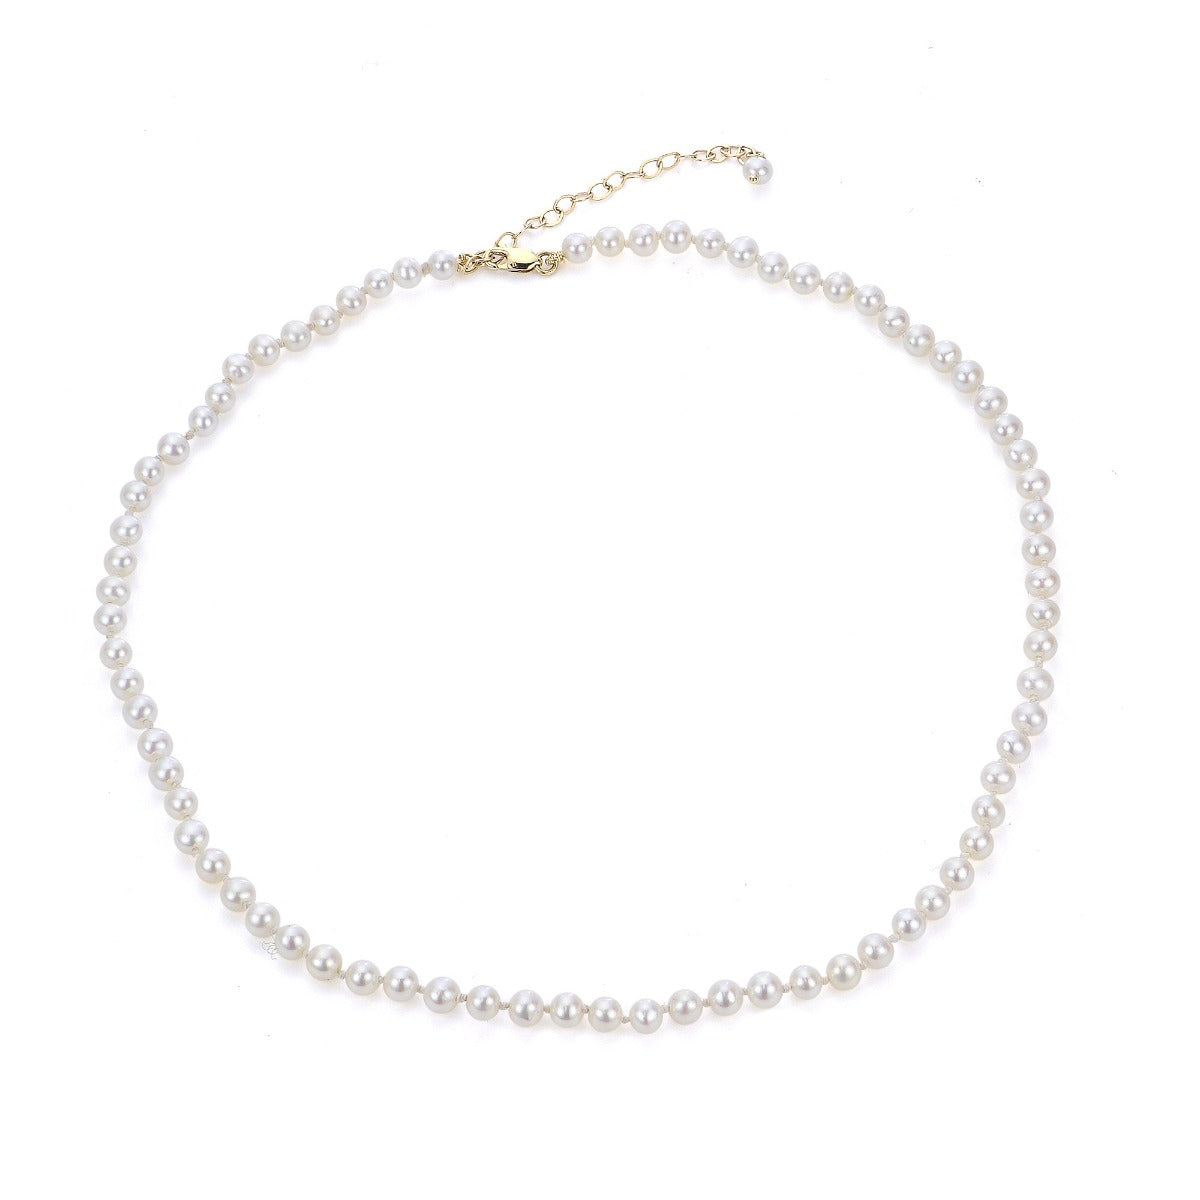 4mm AA Freshwater Pearl Child's Necklace